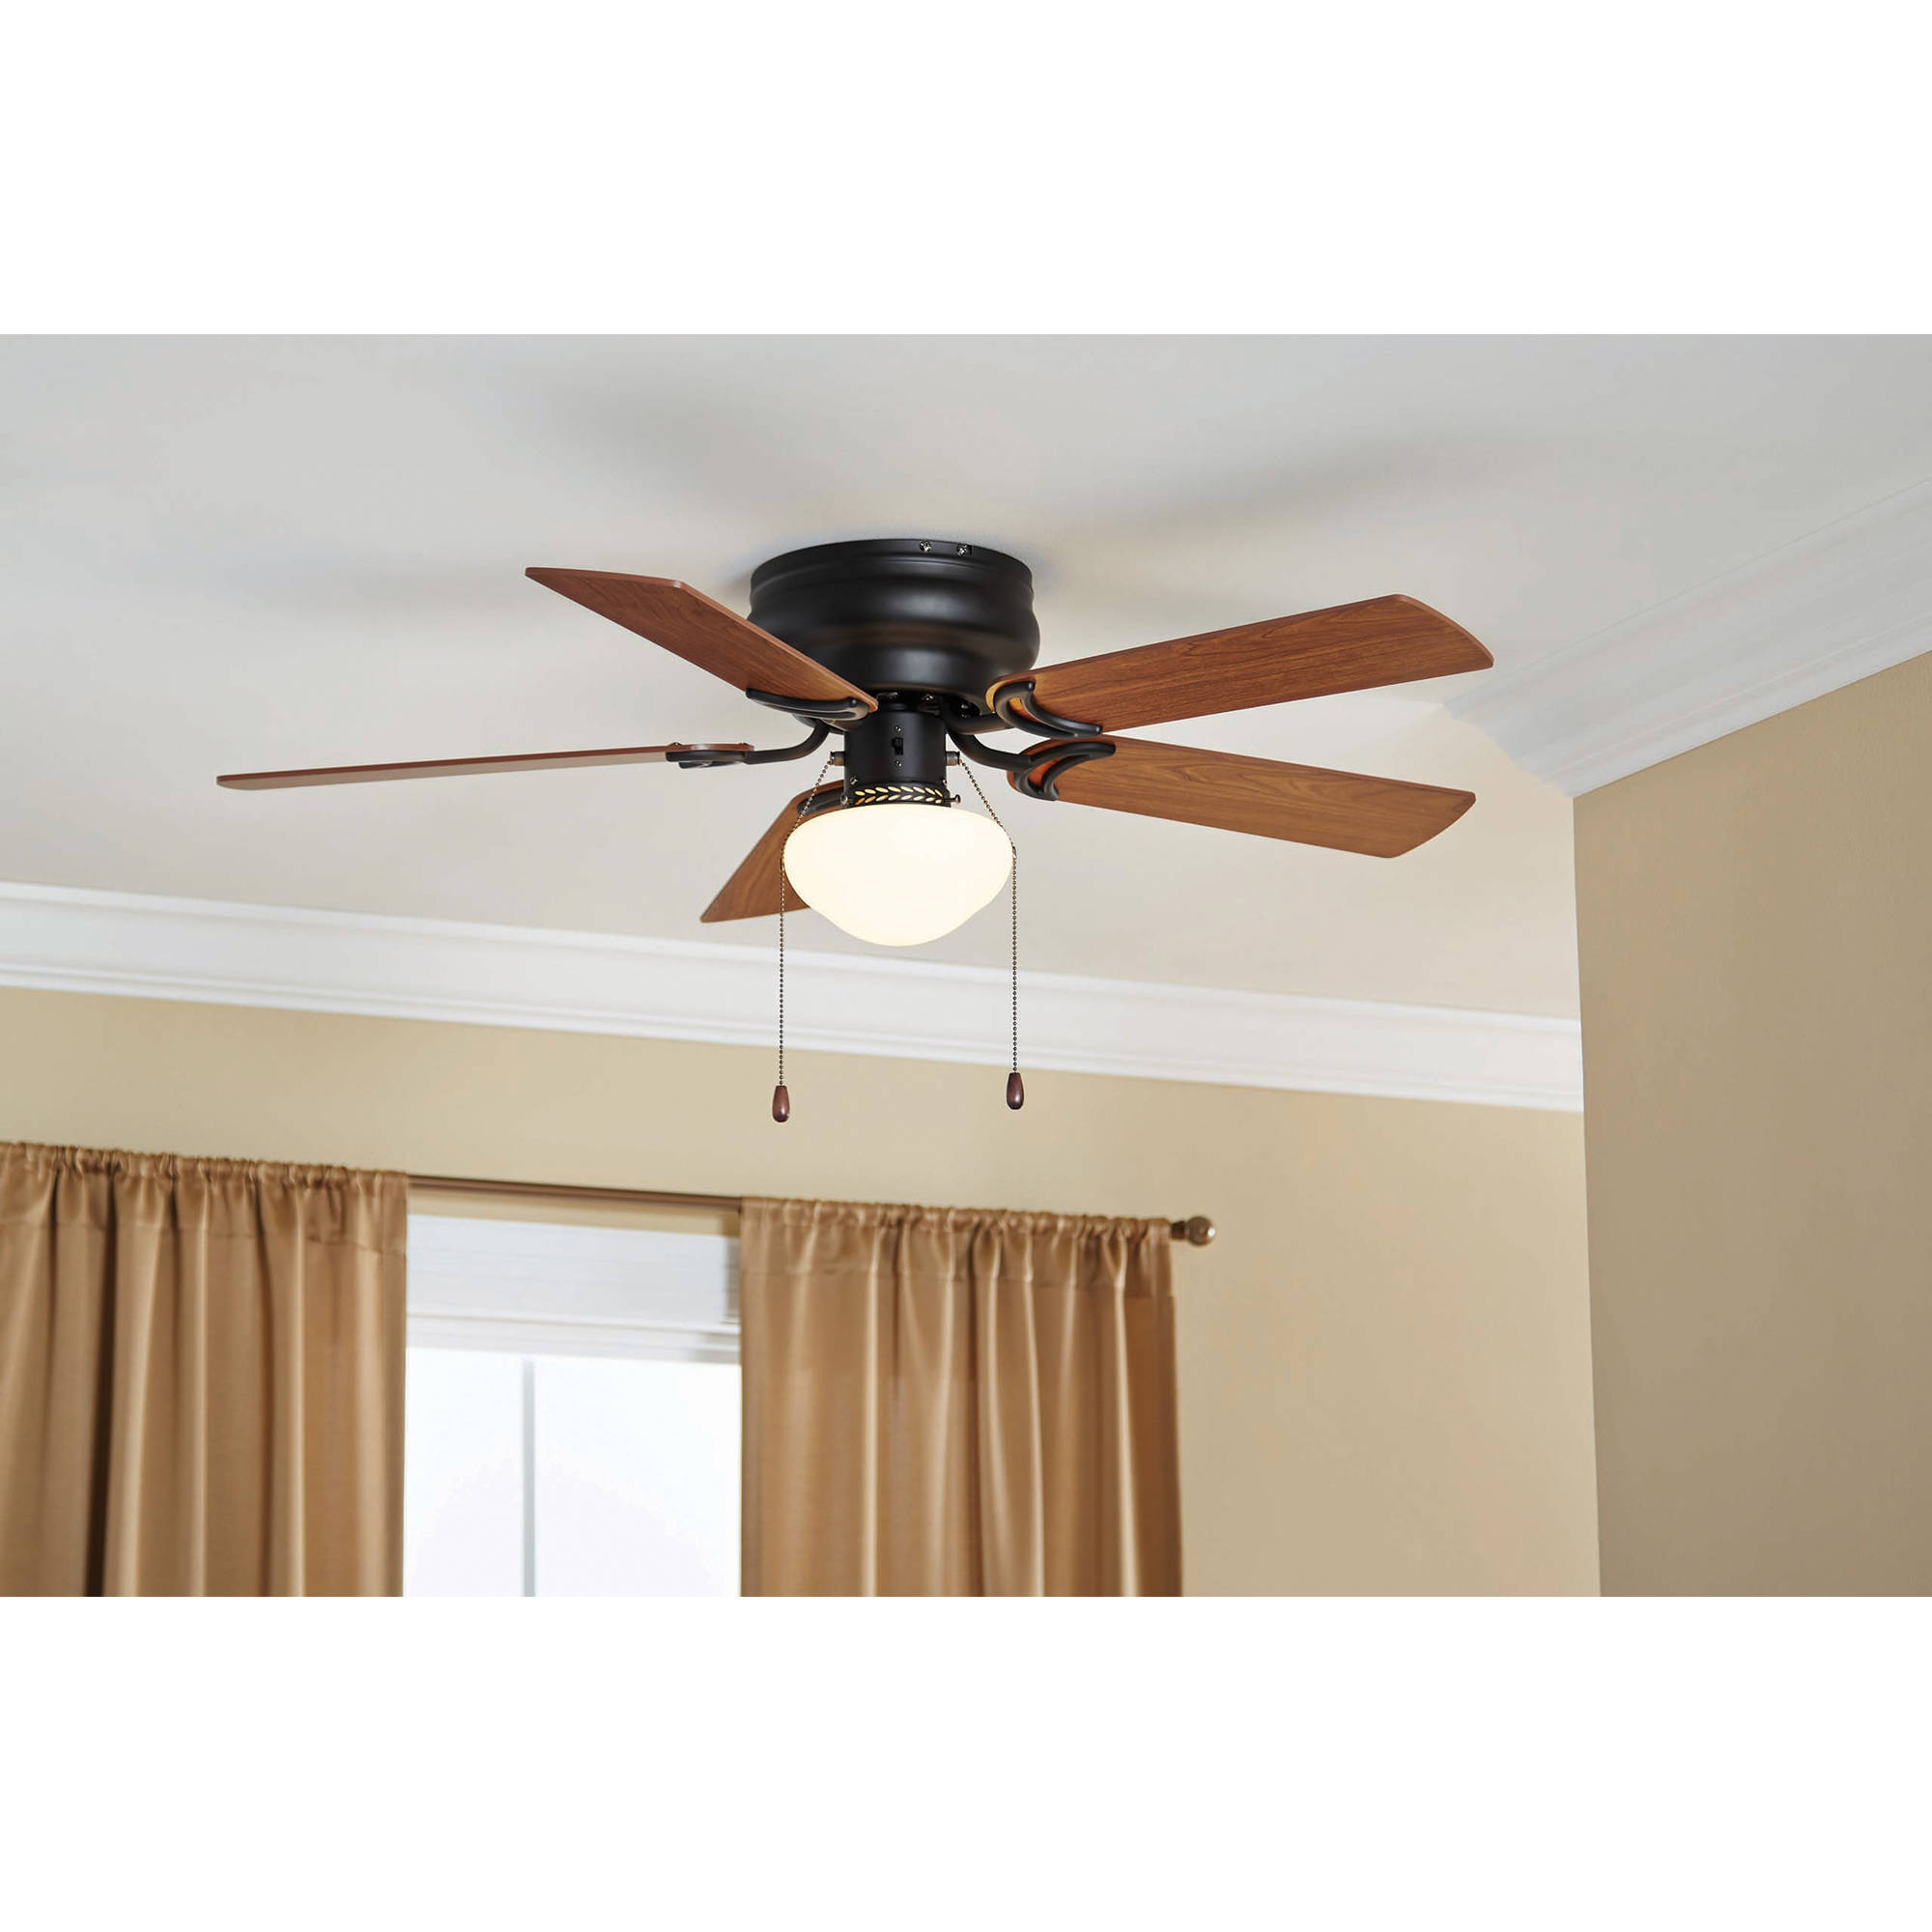 Smc Ceiling Fans Wiring Diagrams Vintage Fanscom Forums Hunter Fan Images Gallery